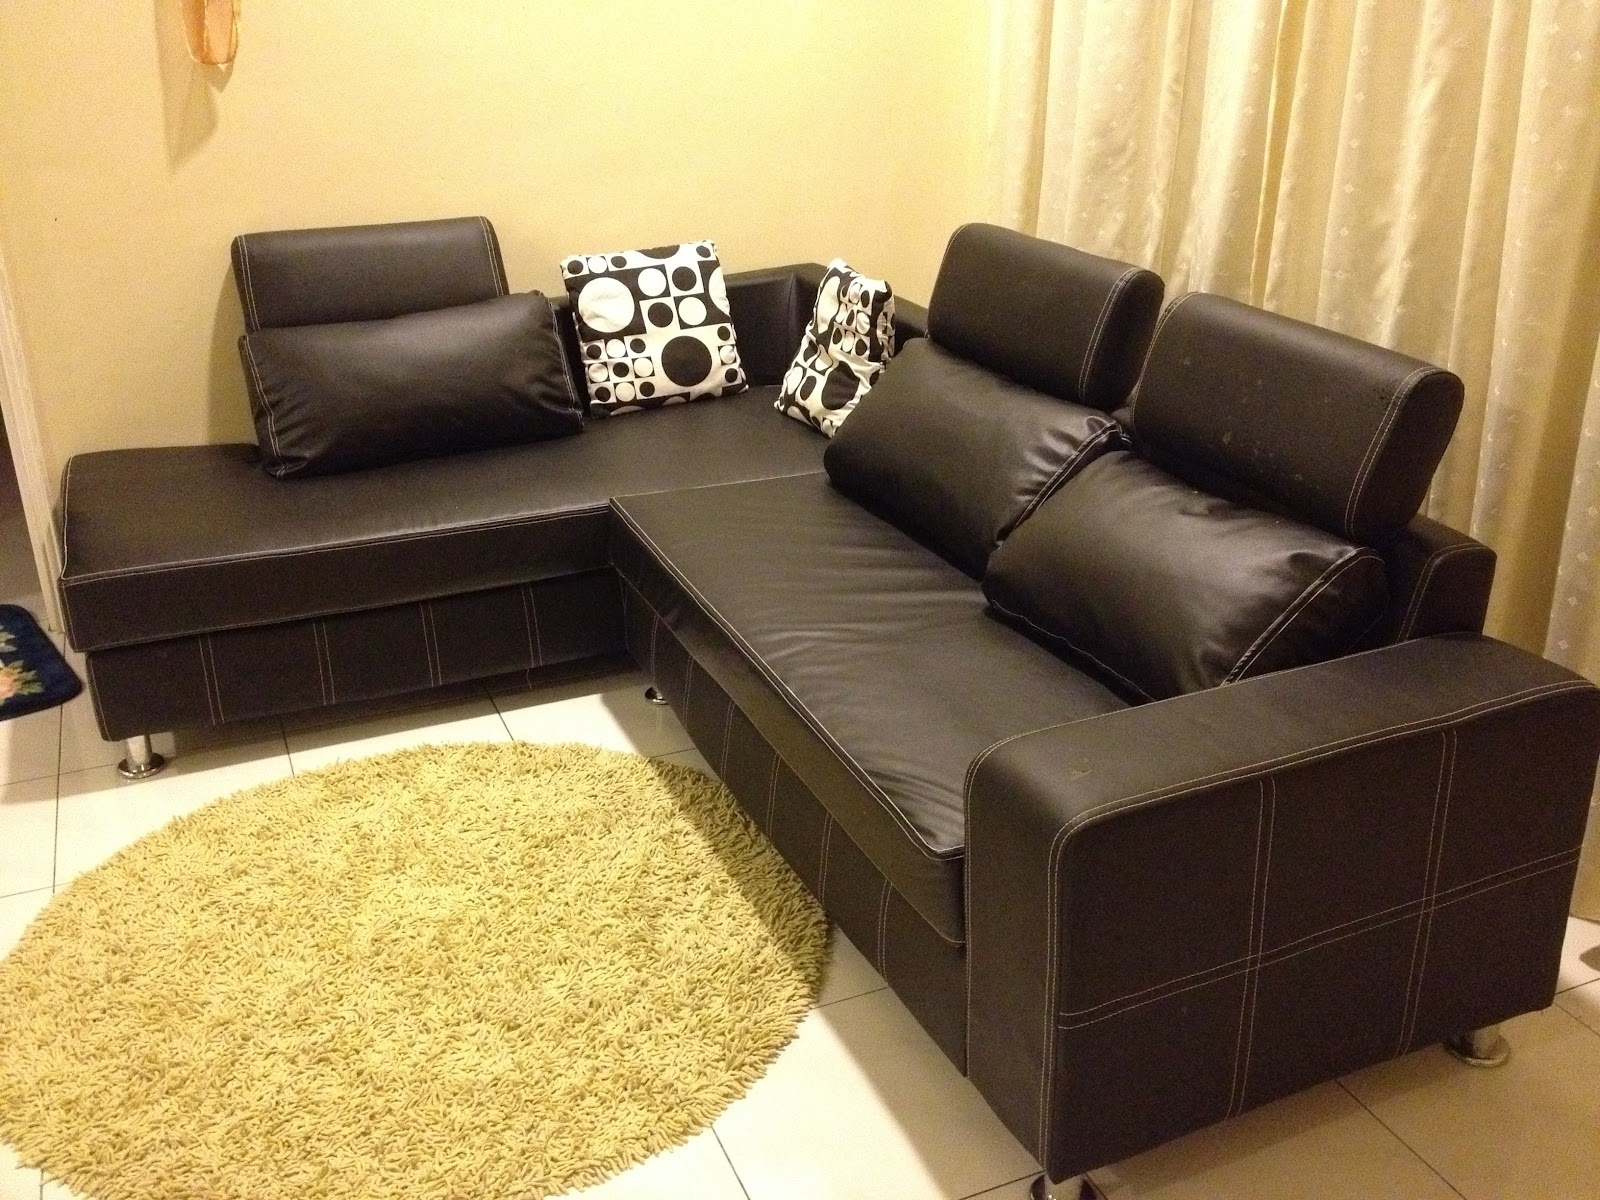 Sectional Sofas In Philippines Intended For Well Known Awesome Leather Sofa For Sale Philippines – Mediasupload (View 14 of 20)